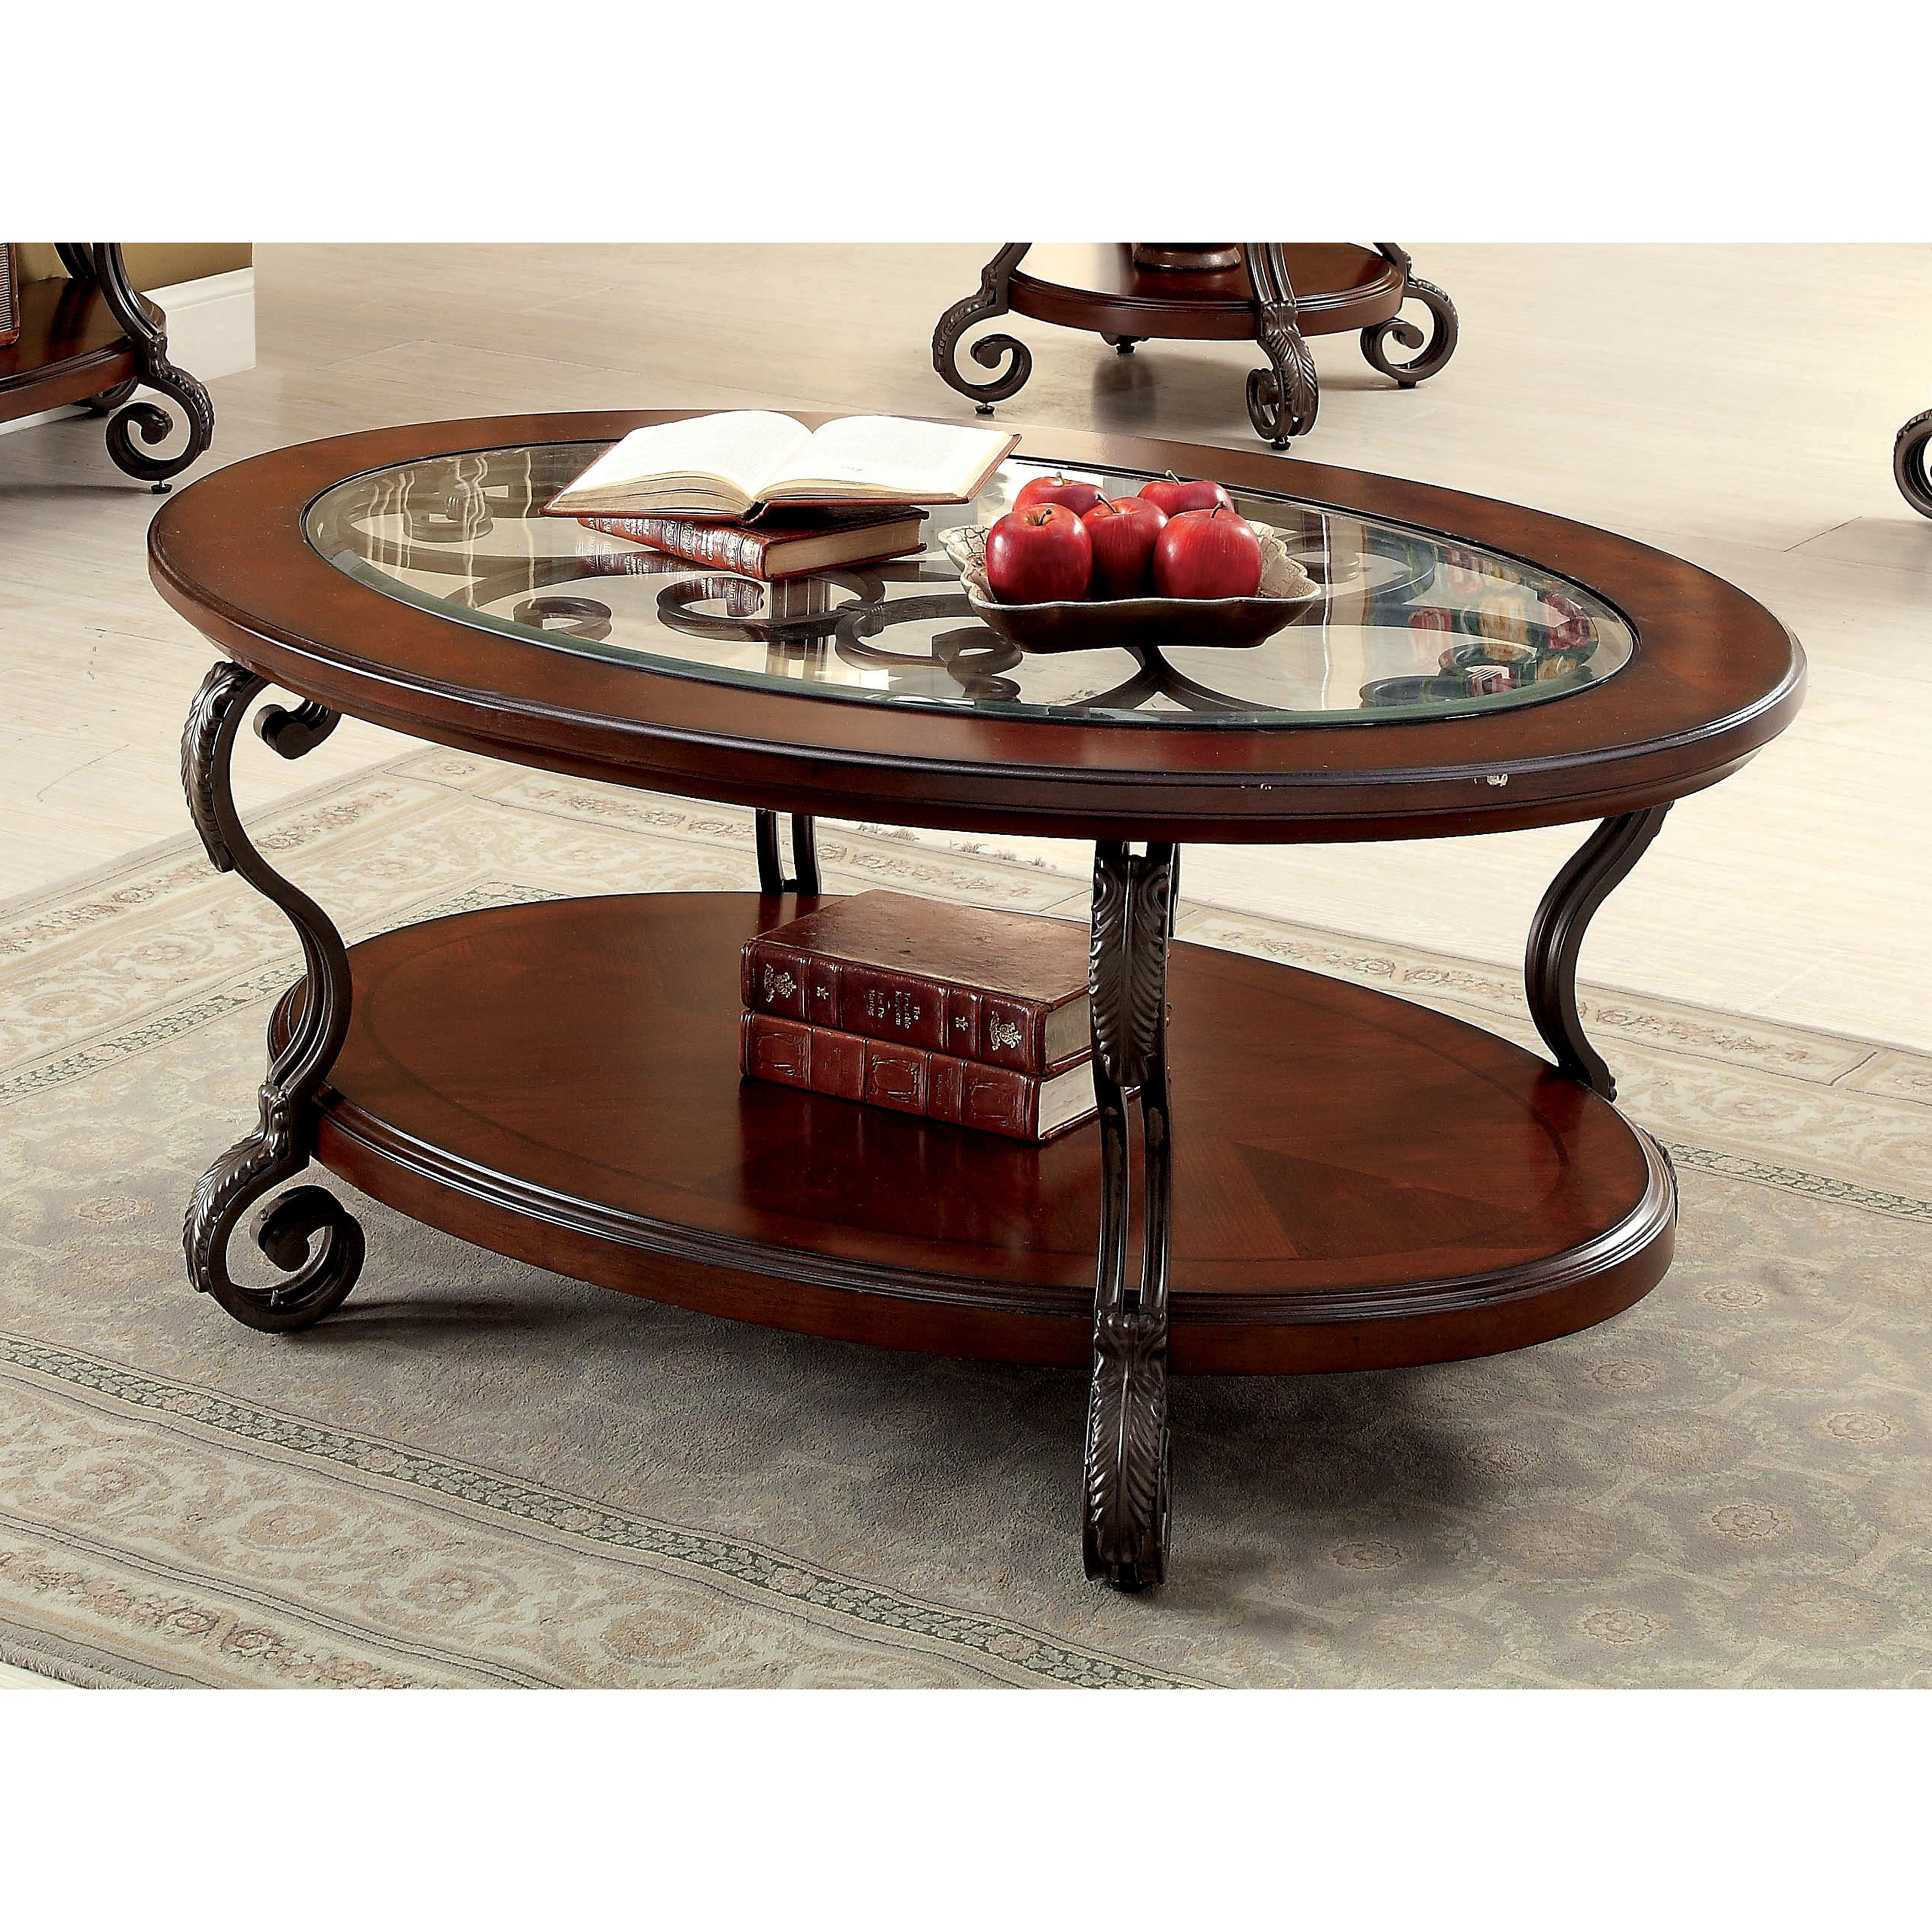 Cohler Traditional Brown Cherry Oval Coffee Table By Foa On Free Shipping Today 11870761